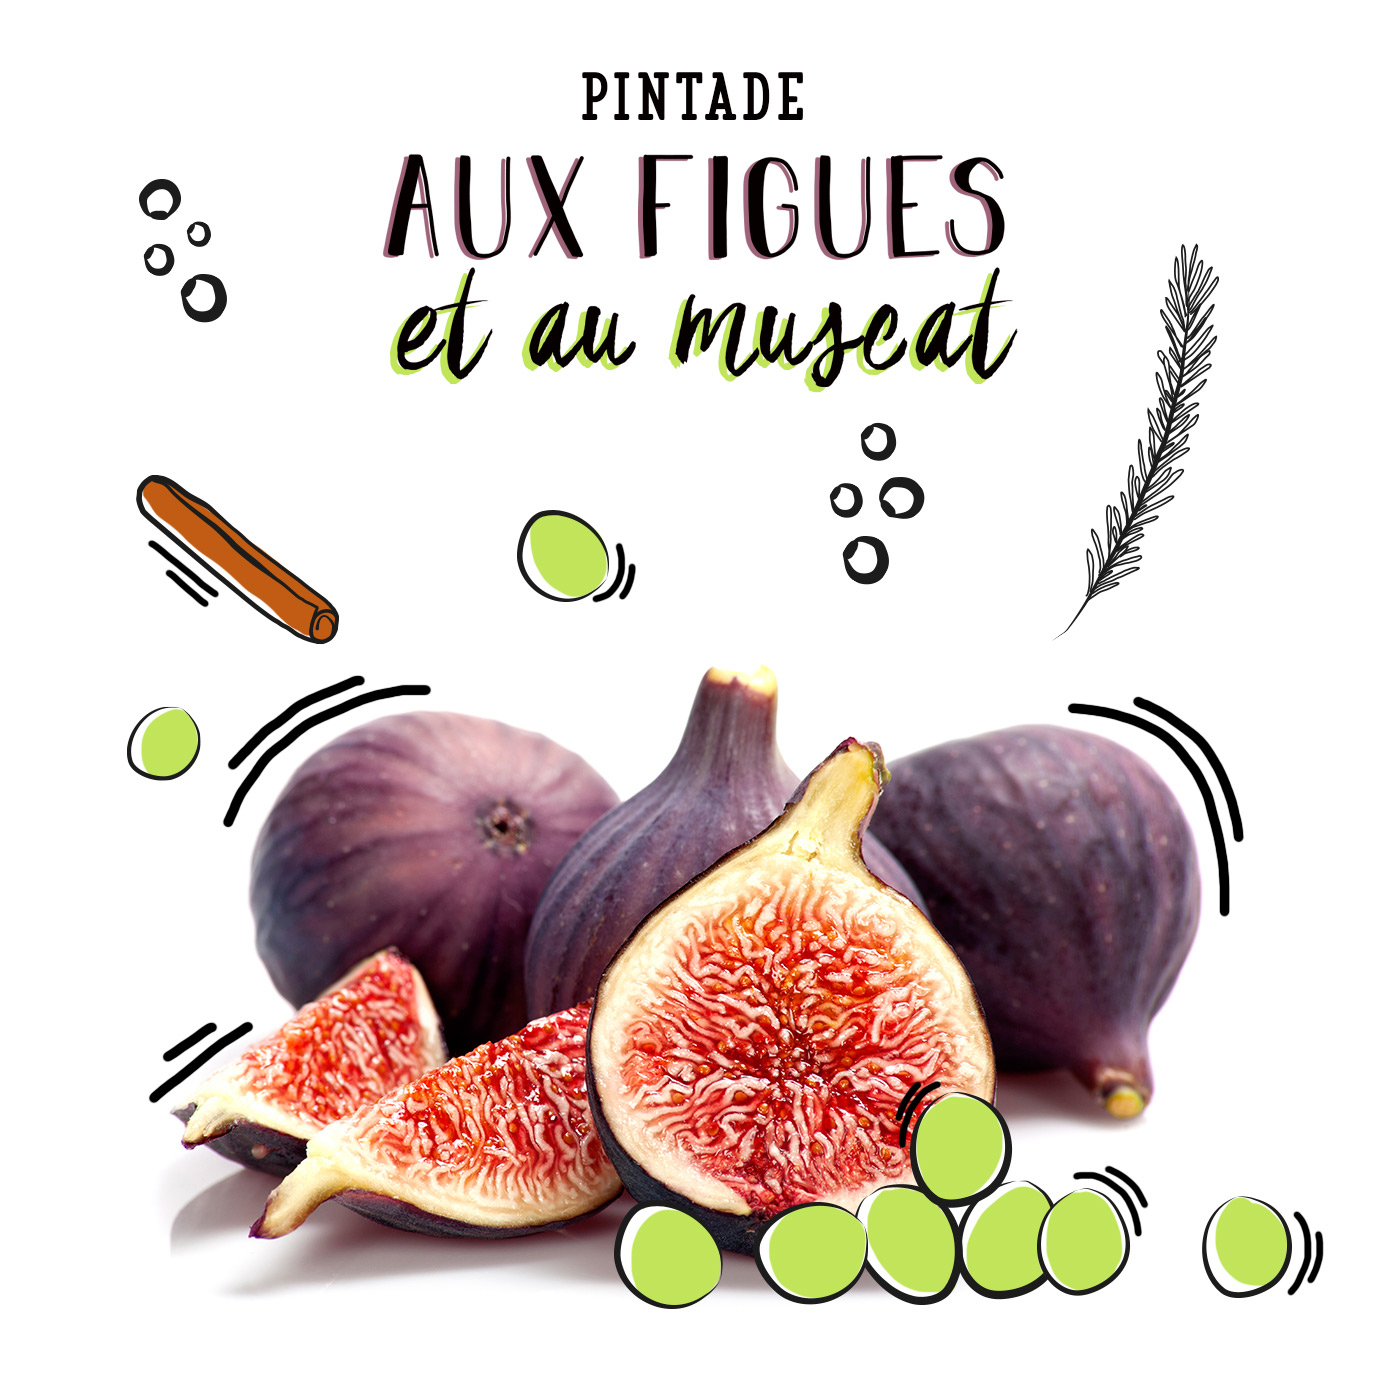 pintade-aux-figues-muscat